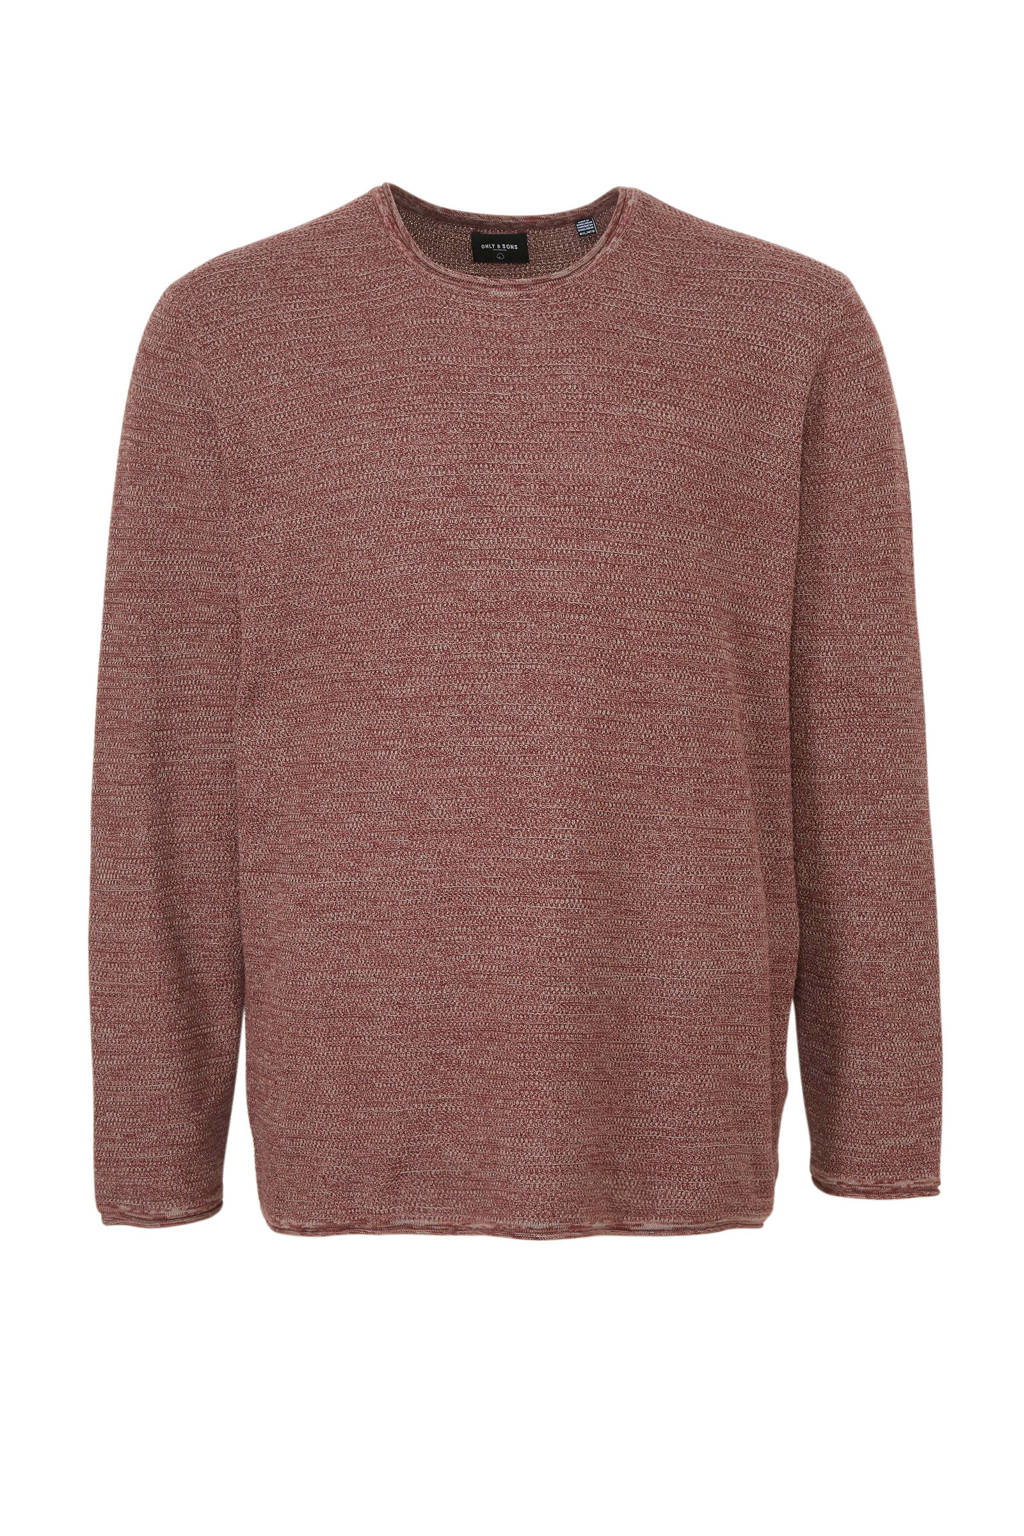 ONLY & SONS PLUS trui donkerrood, Donkerrood